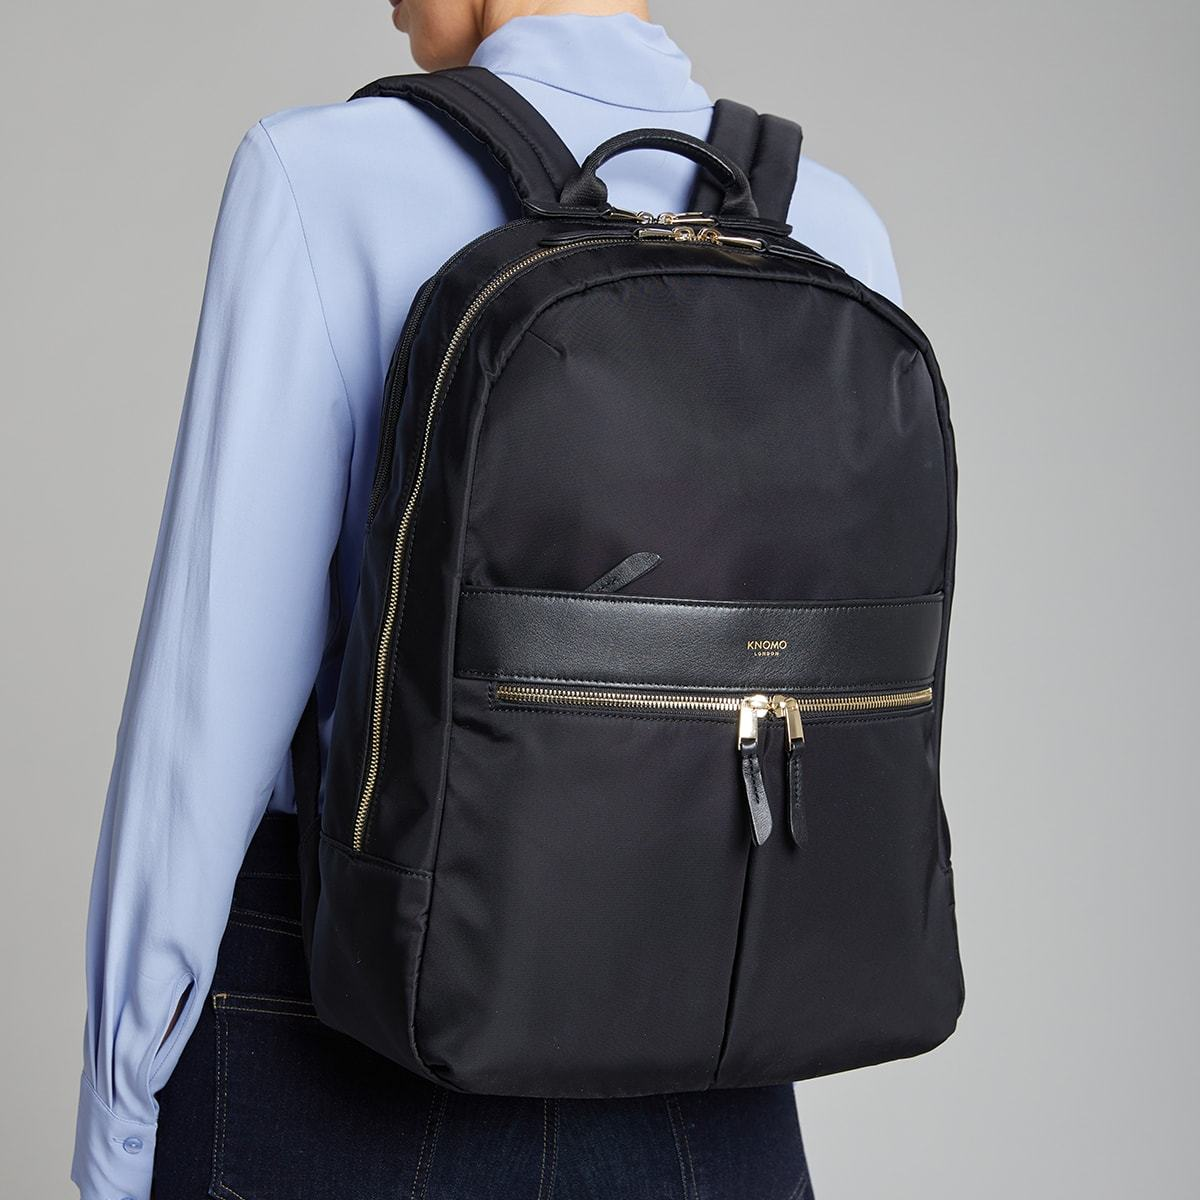 "Beaufort Laptop Backpack - 15.6"" -  Black 